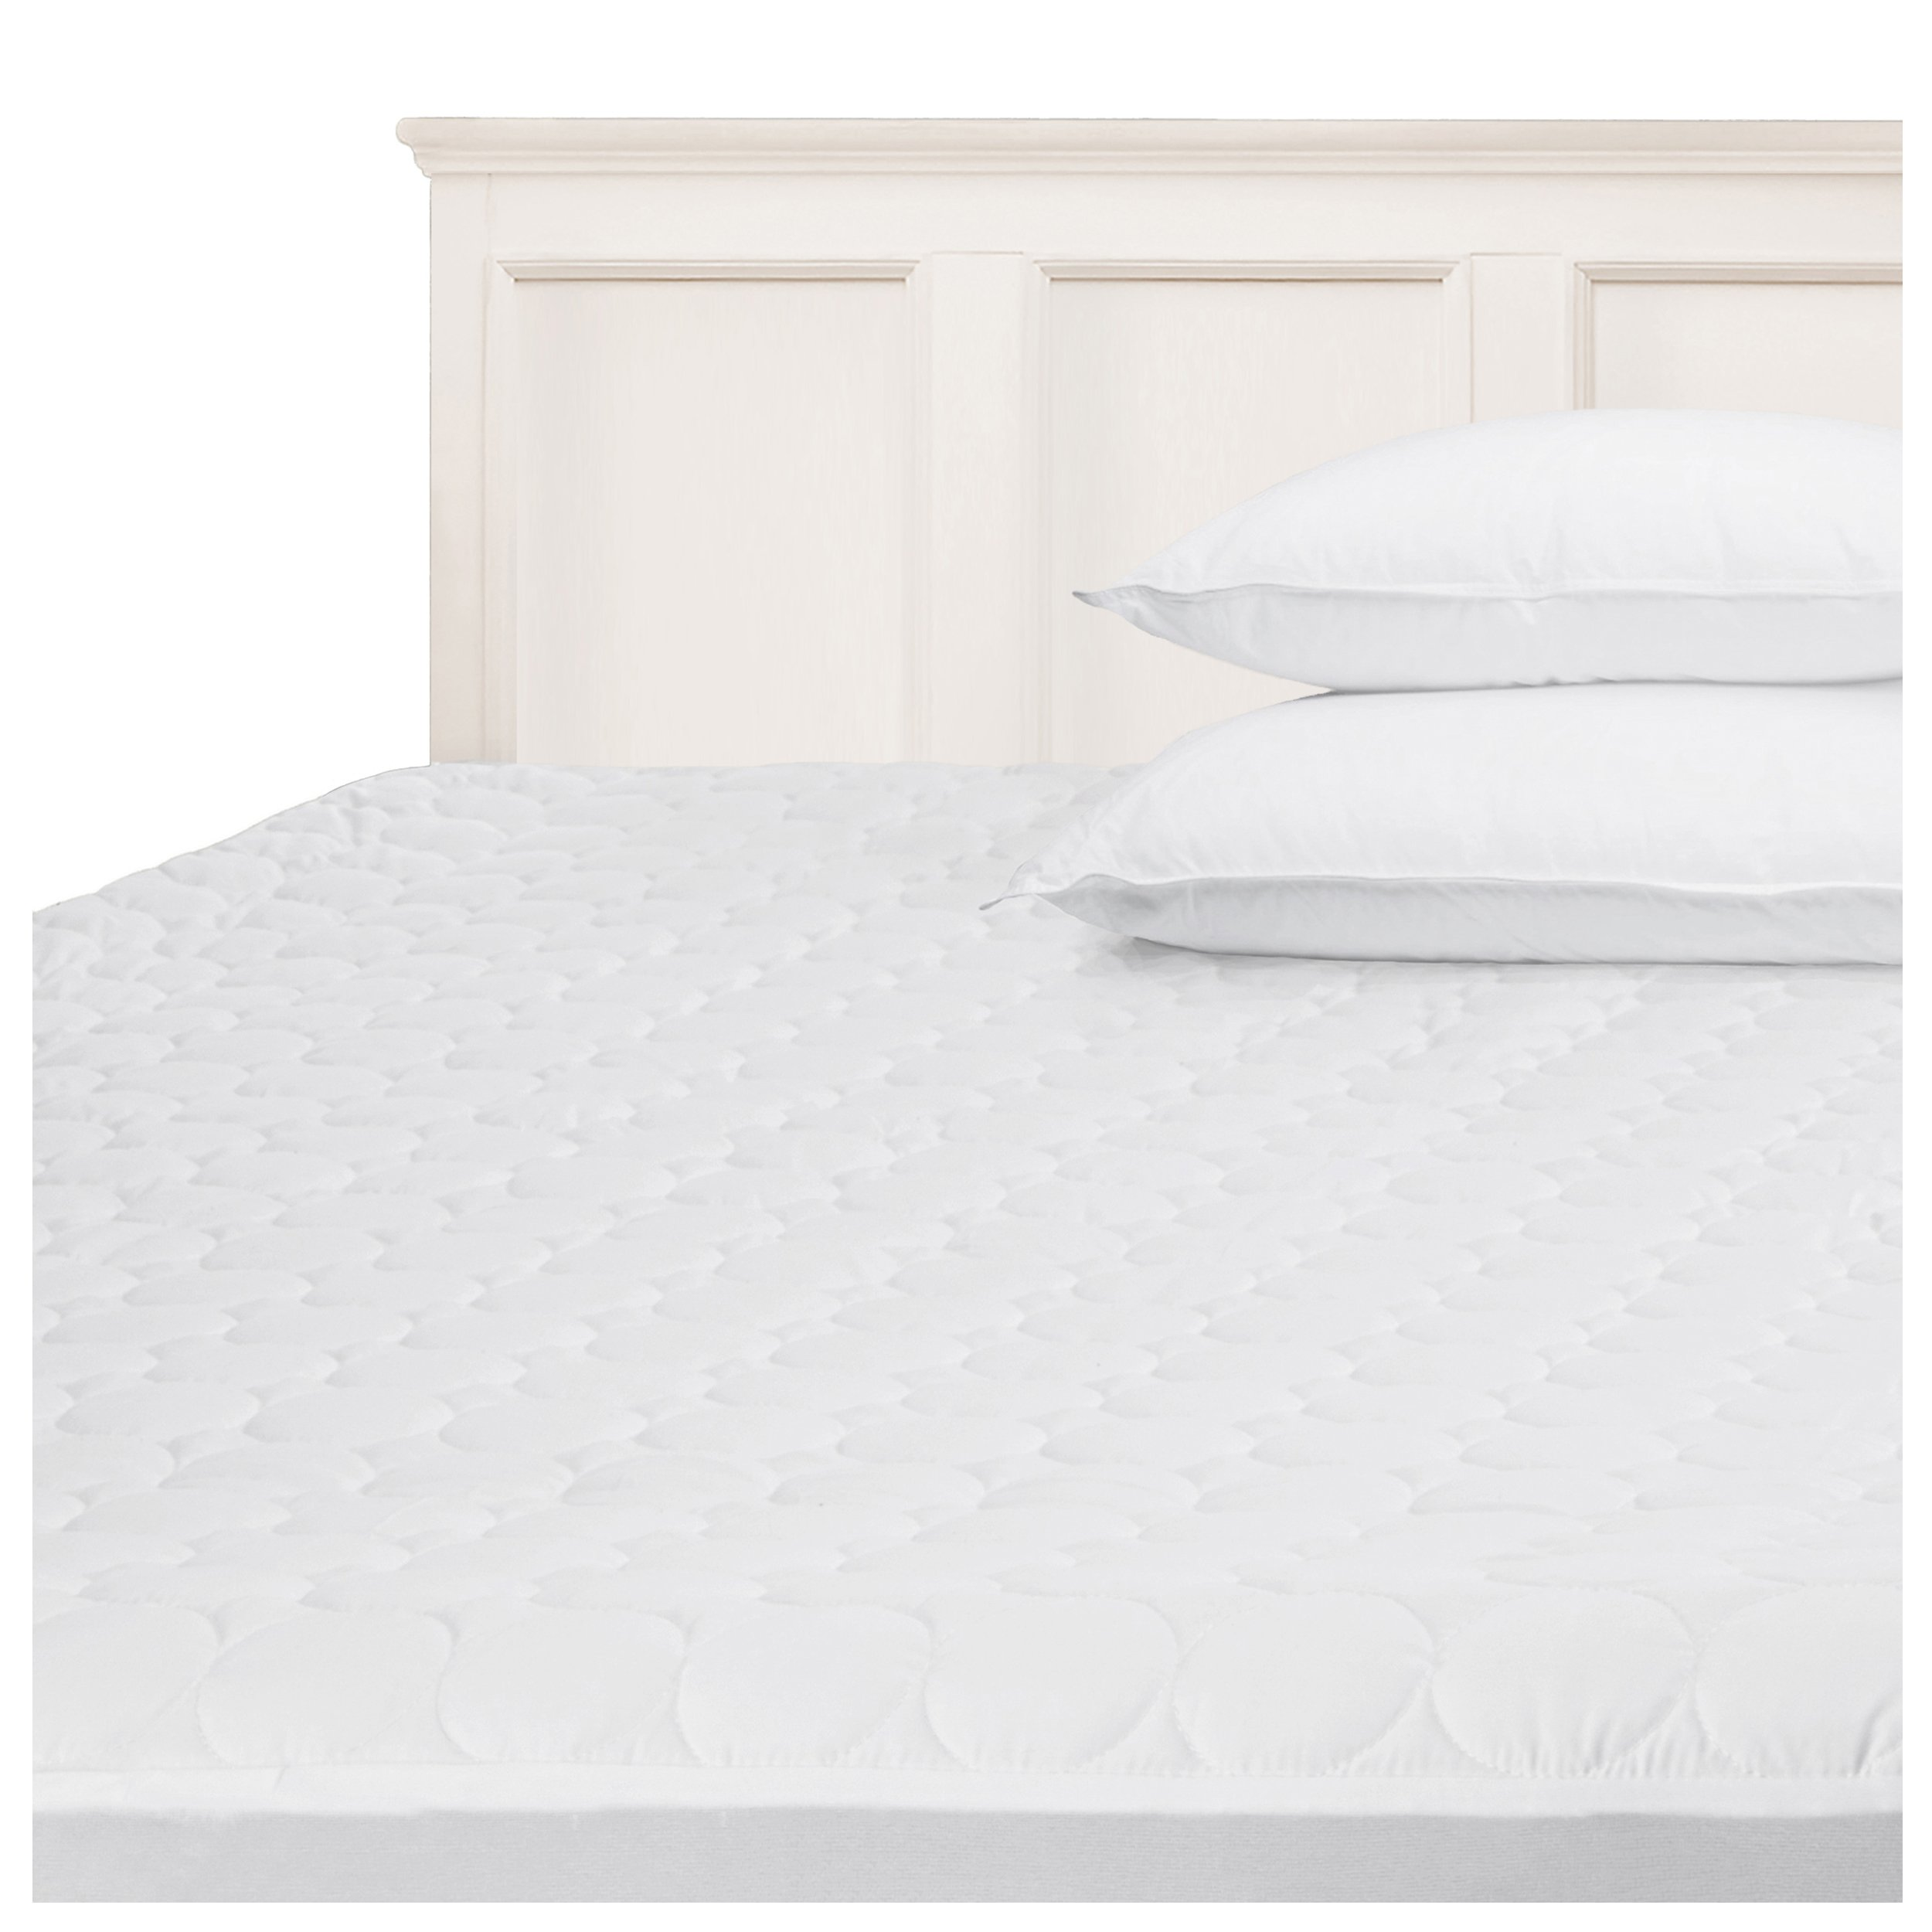 Superior Quilted Mattress Pad Protector Cover, Hypoallergenic, Soft Quilted Microfiber Fabric, Fully Elasticized Deep Pocket Skirt Accommodates 16-inch Mattress, White, Full Size